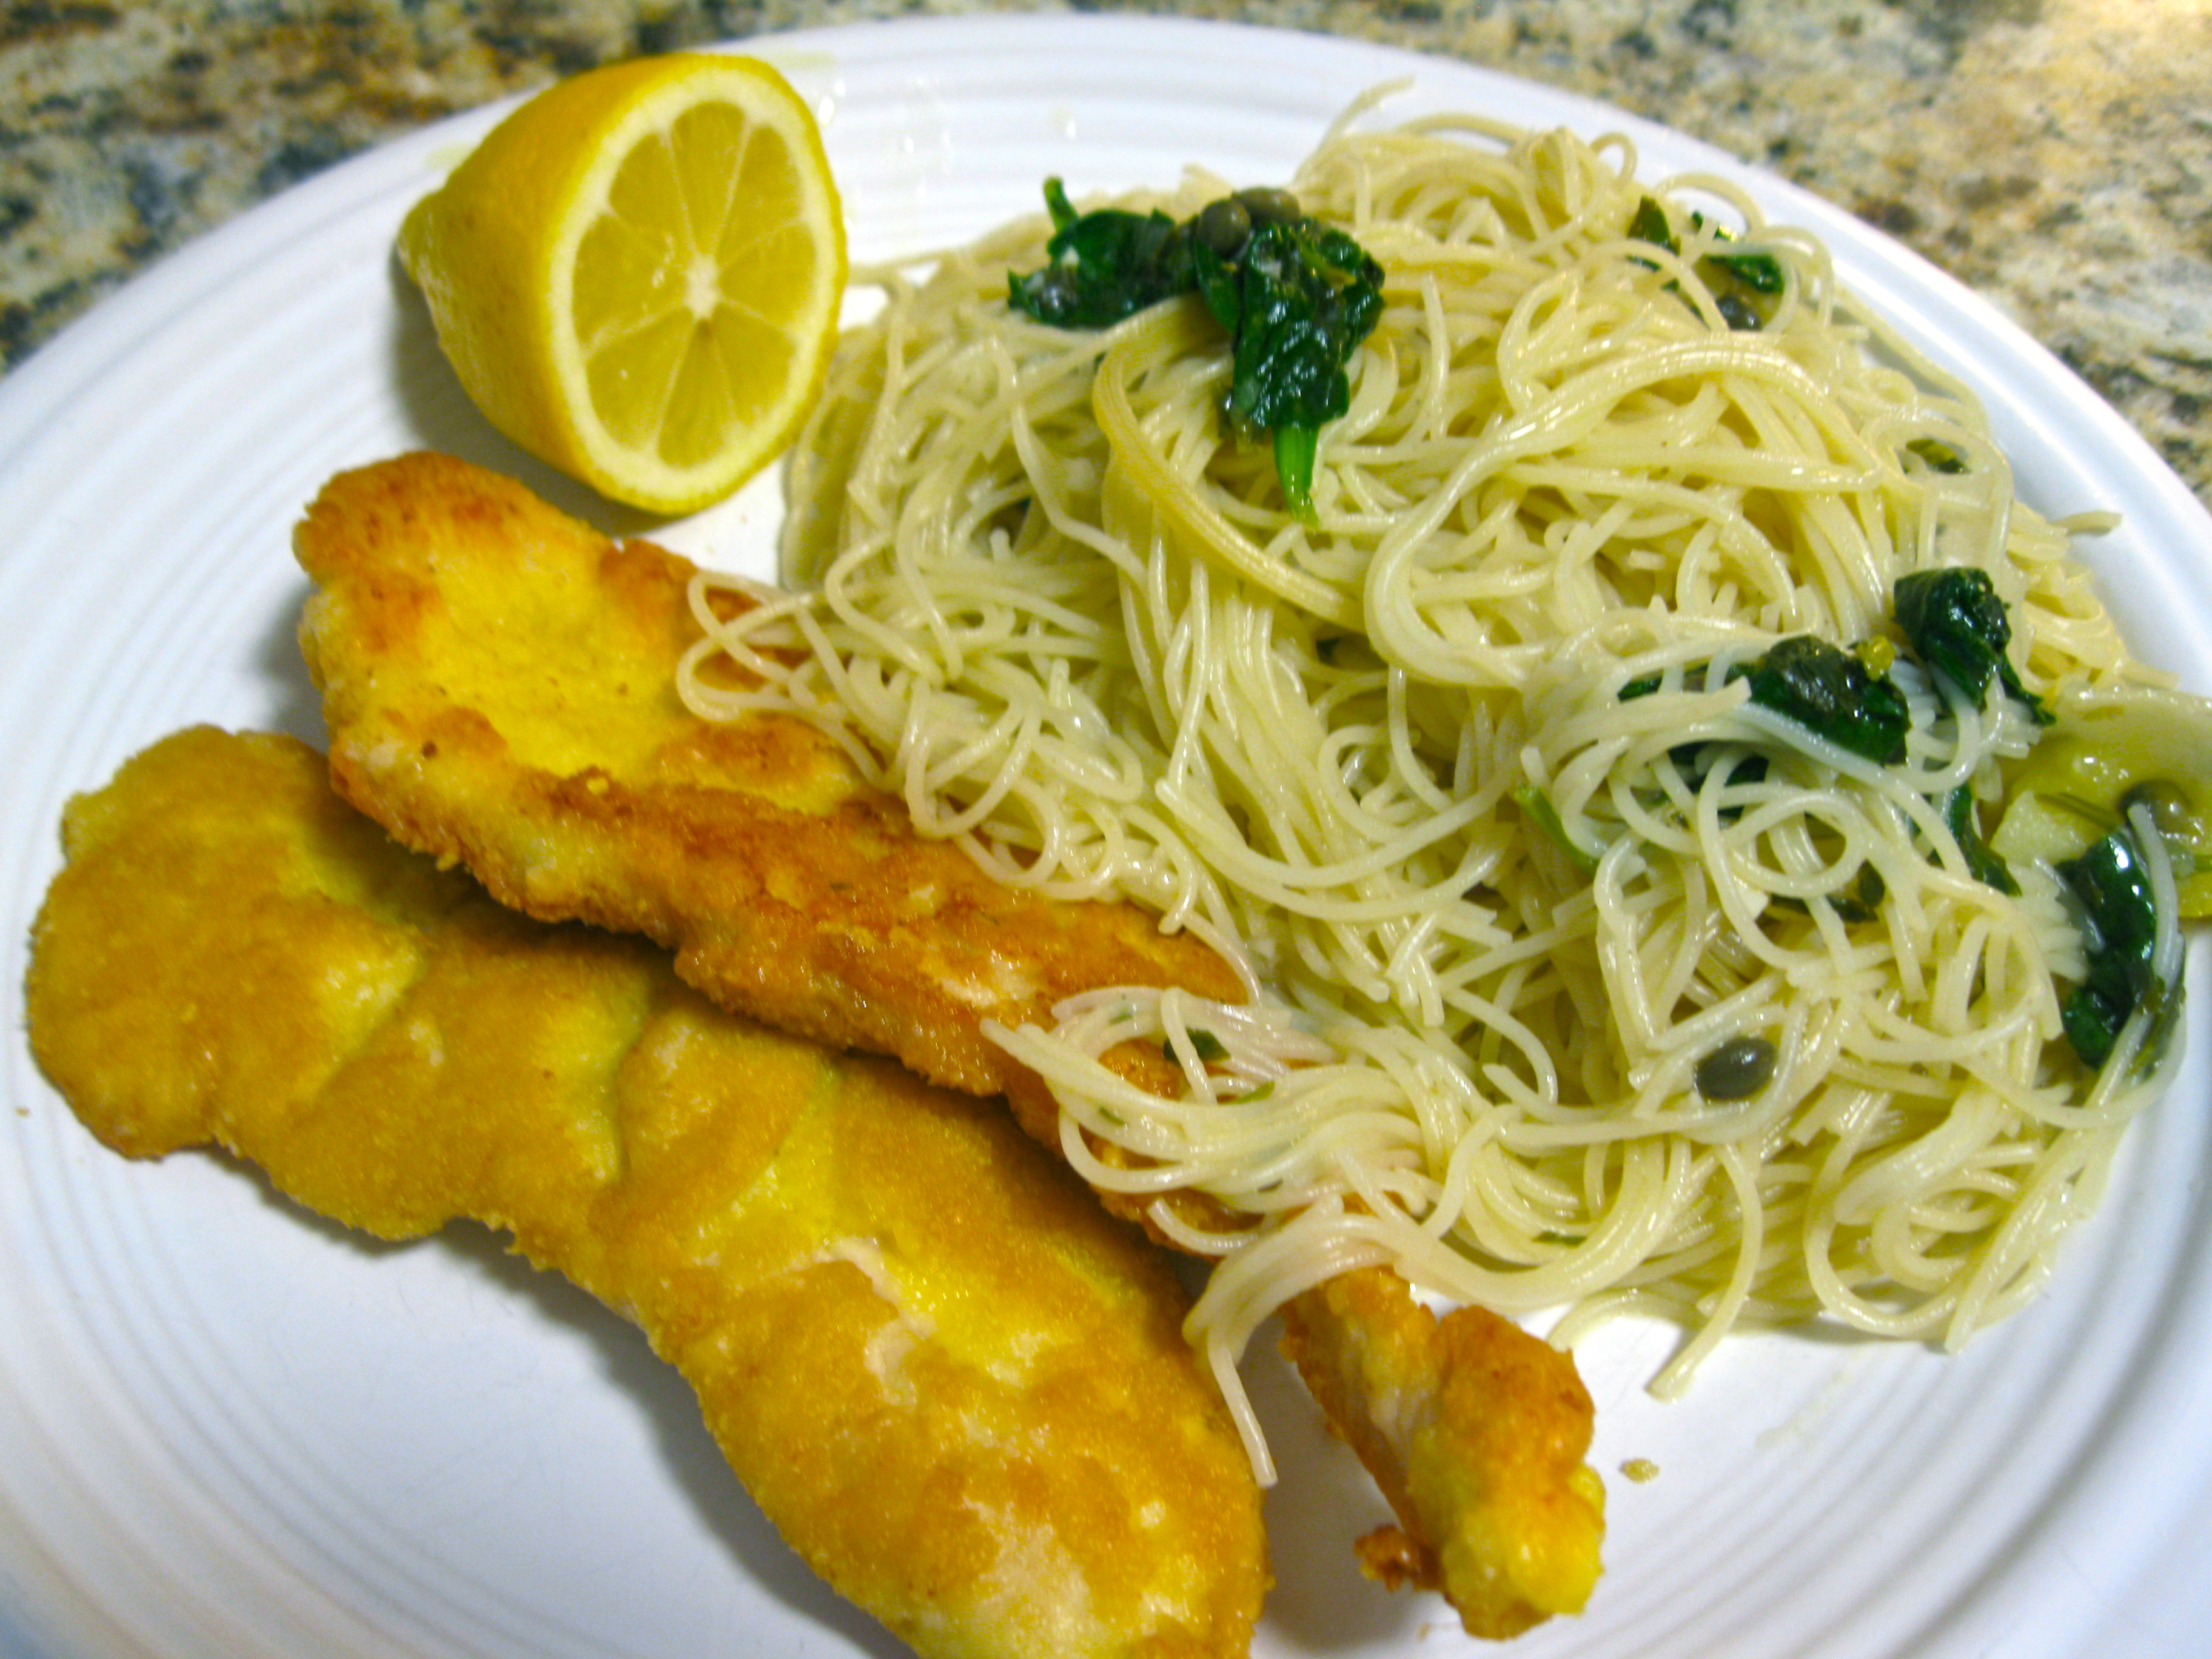 29.2: Parmesan-crusted Chicken with Lemon Spinach Angel Hair